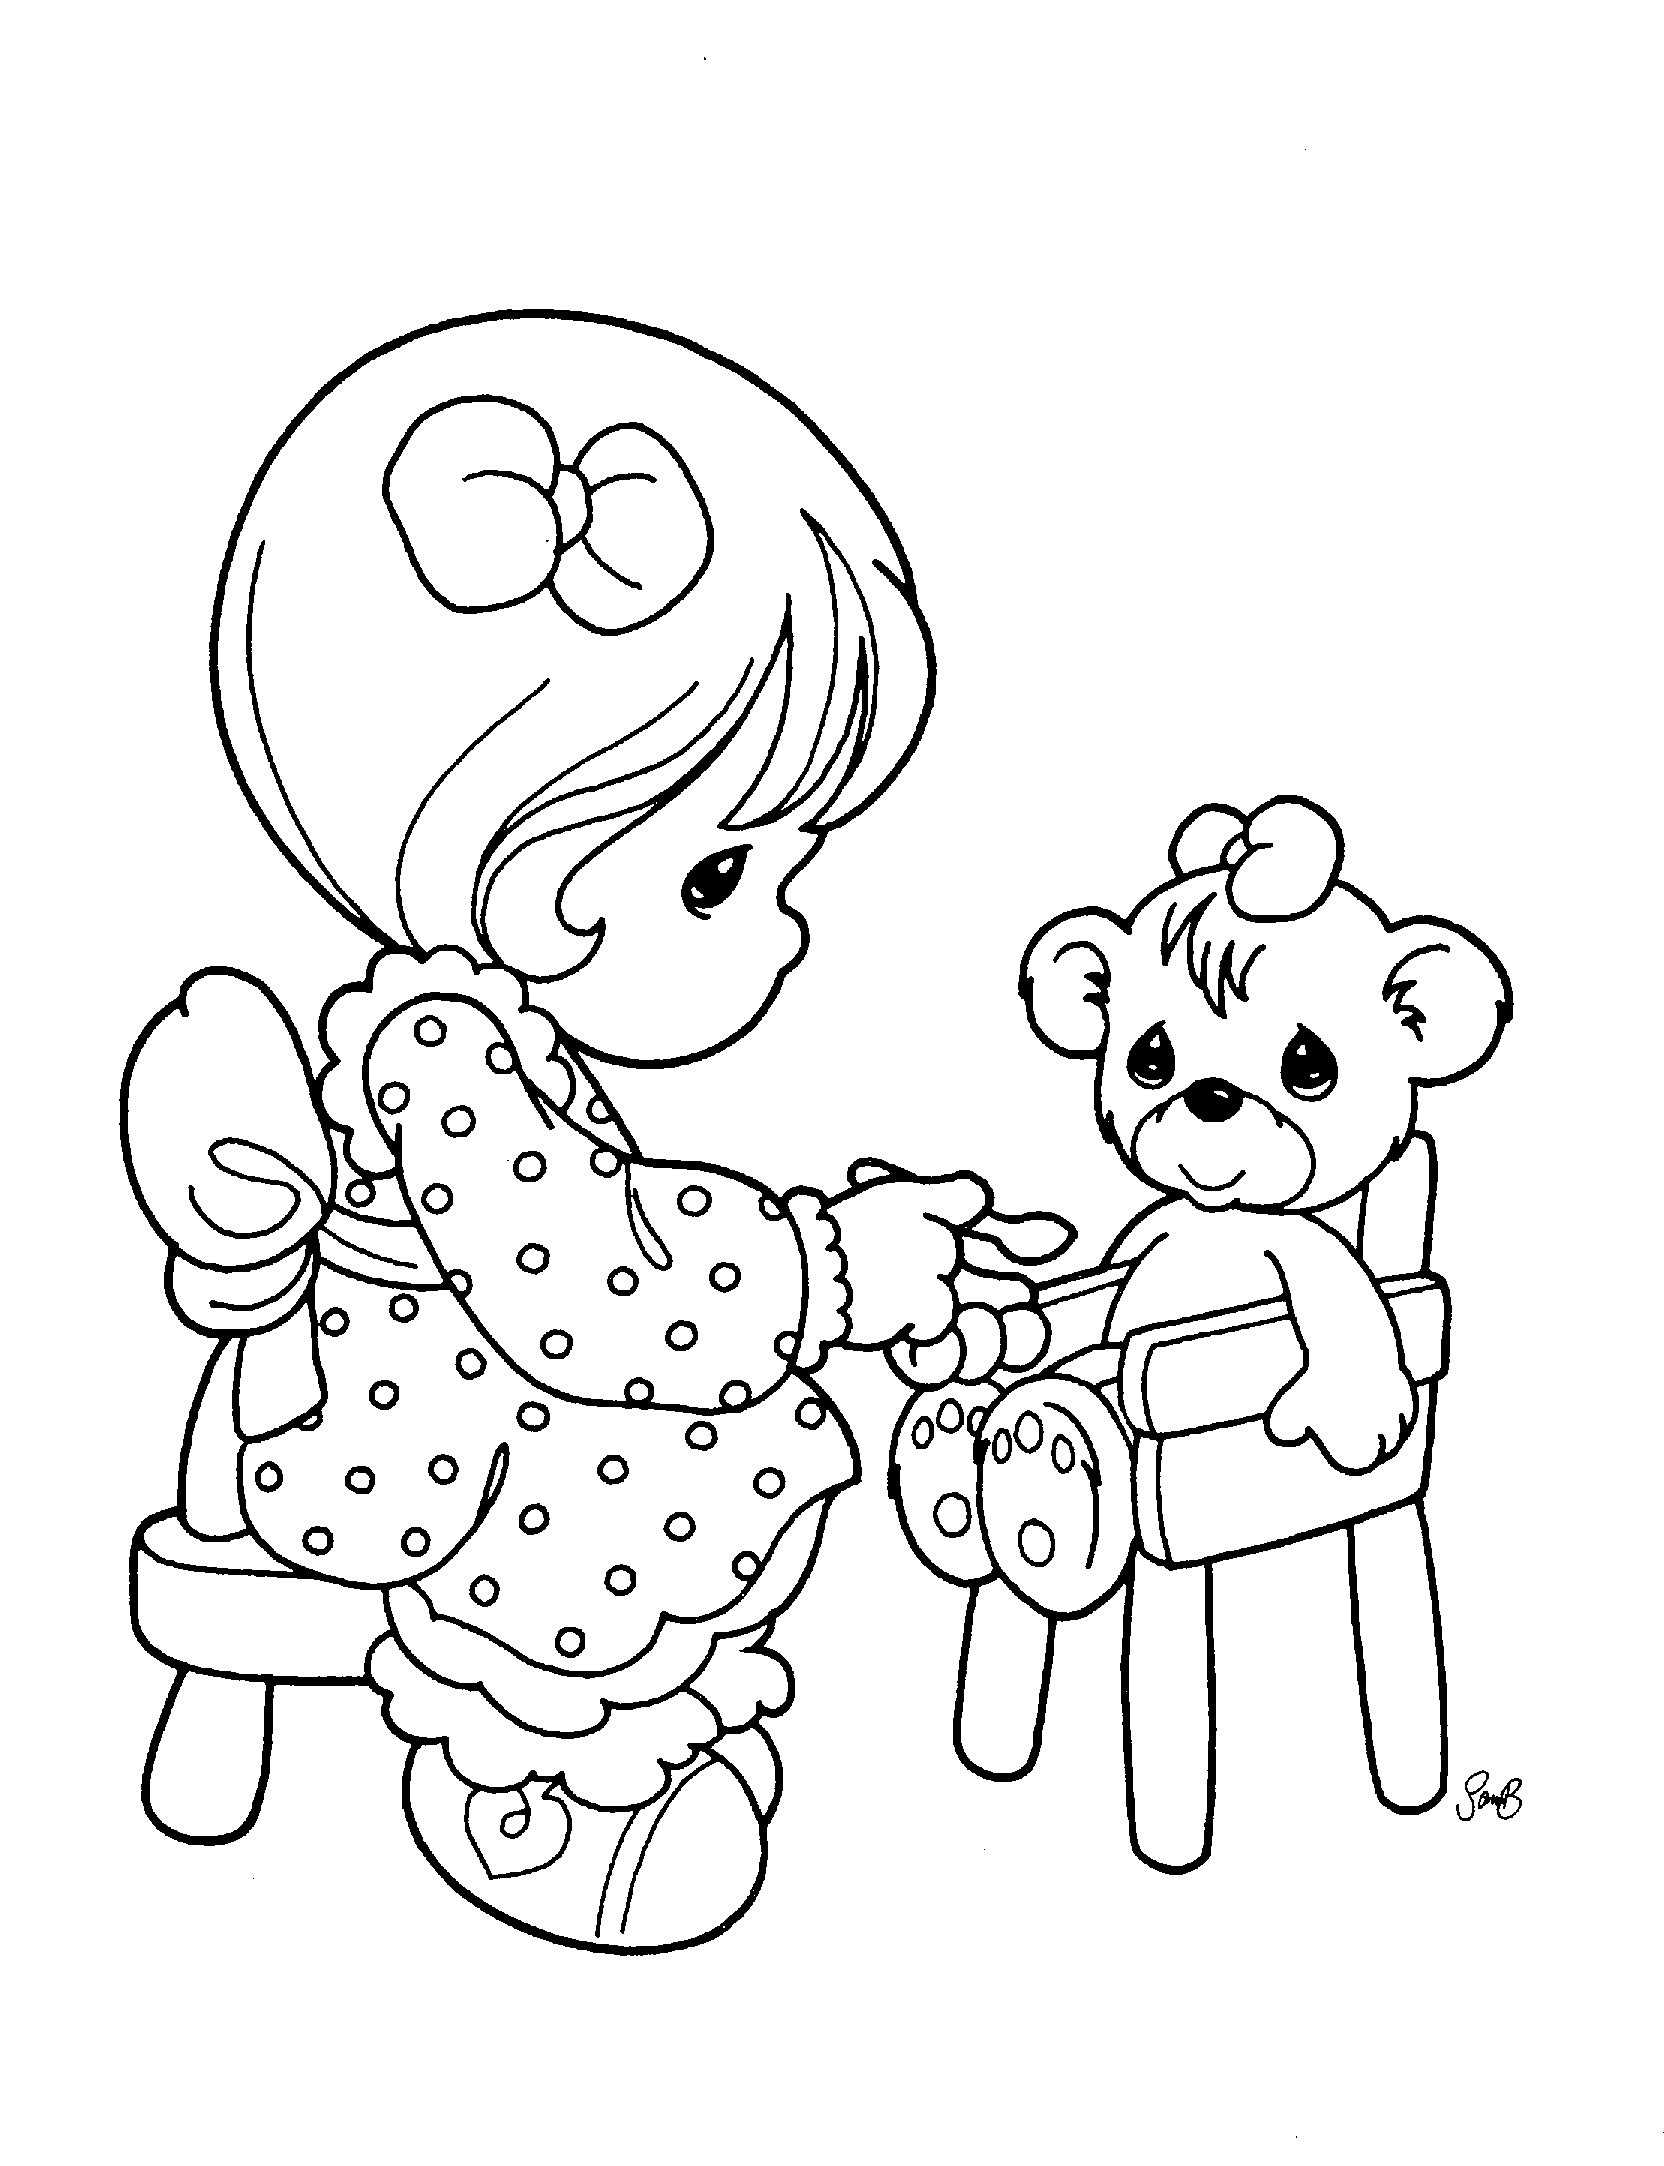 Christmas Coloring Pages Precious Moments With Collection Of Free